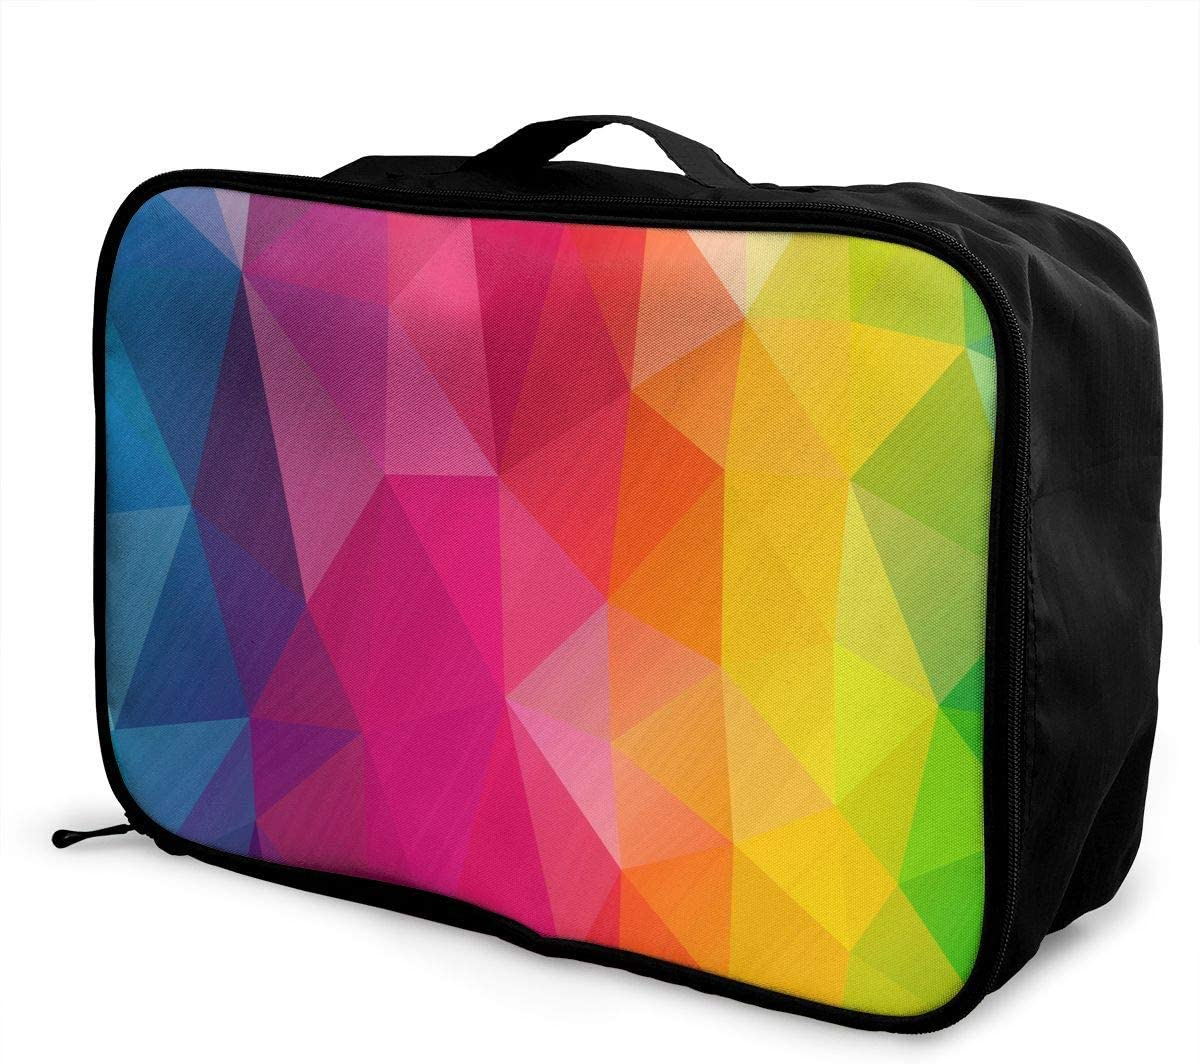 Travel Bags Triangles Colorful Portable Suitcase Trolley Handle Luggage Bag